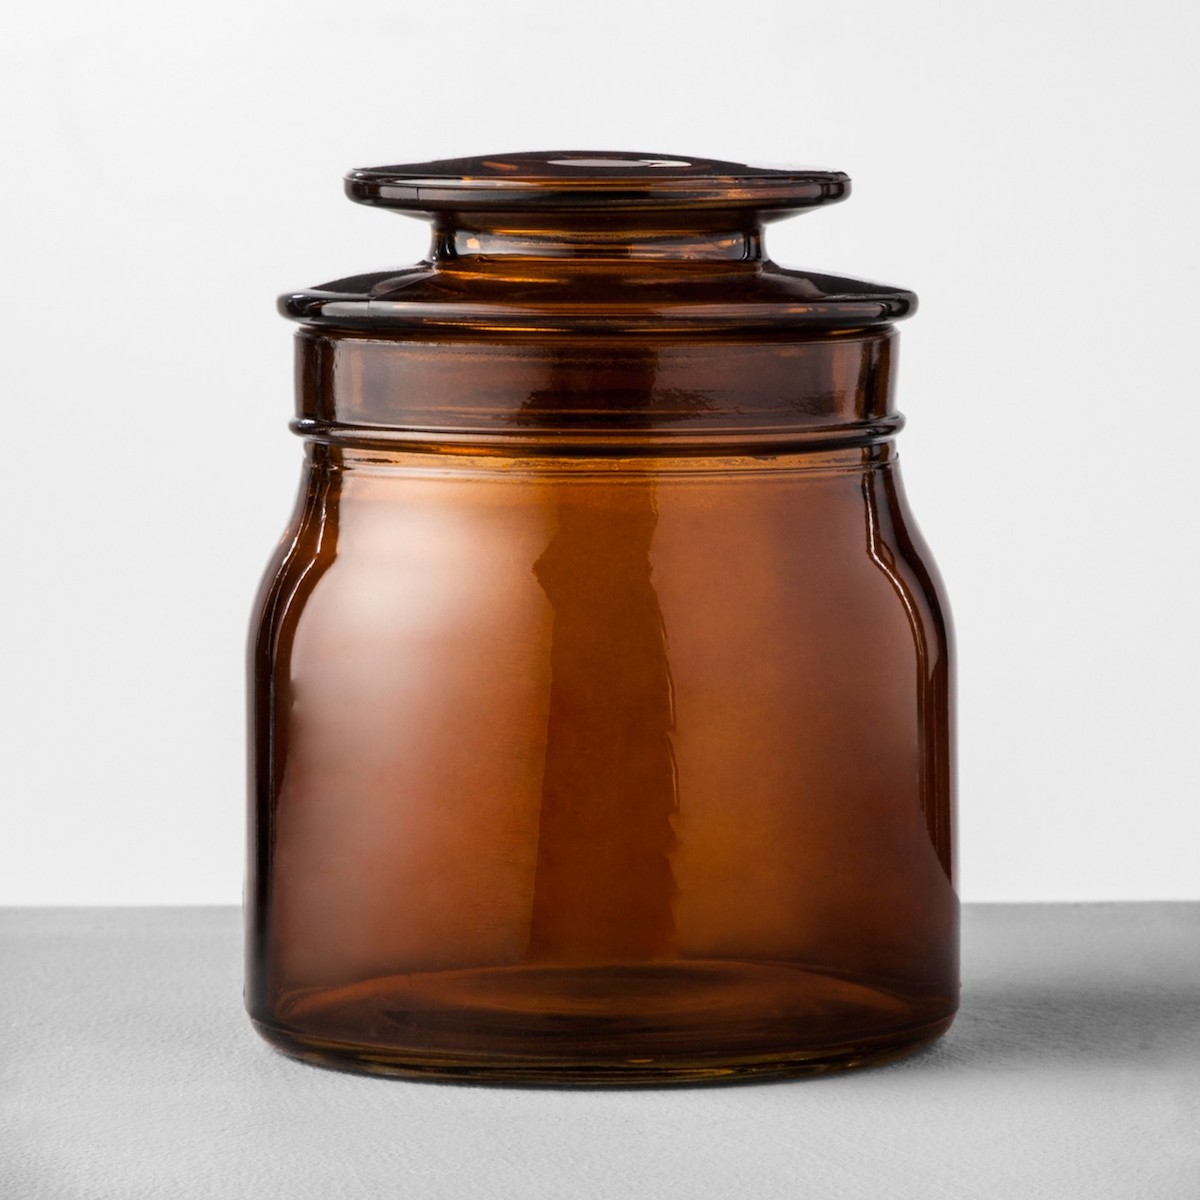 Joanna Gaines Target Fall Collection, Amber Glass Canister